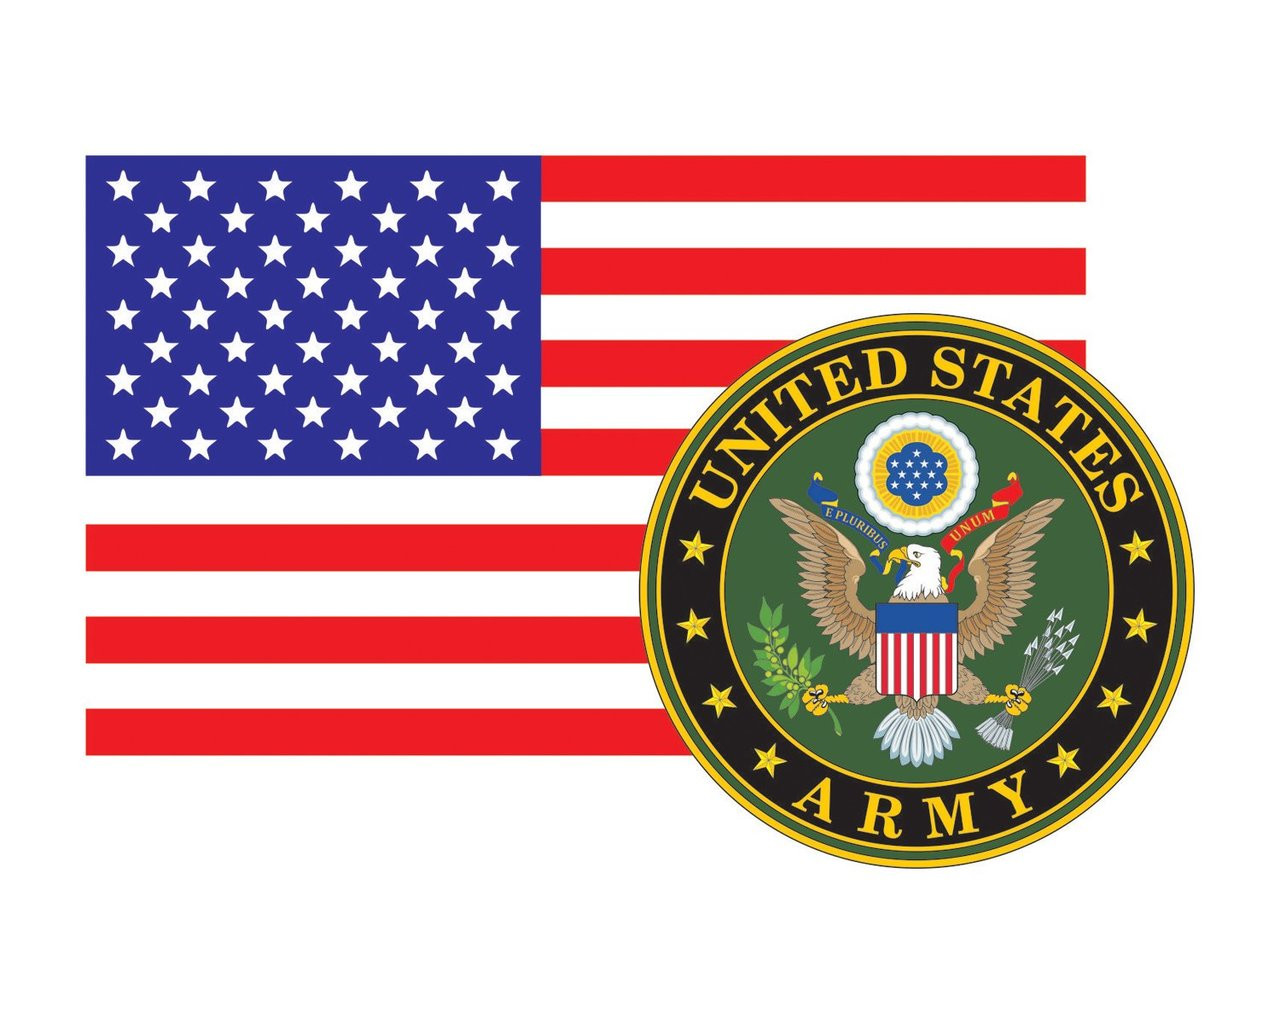 American Flag With Army Emblem Us Army Logo Vinyl Decal Sticker For Cars Trucks Laptops Etc 3 22x5 Morale Tags